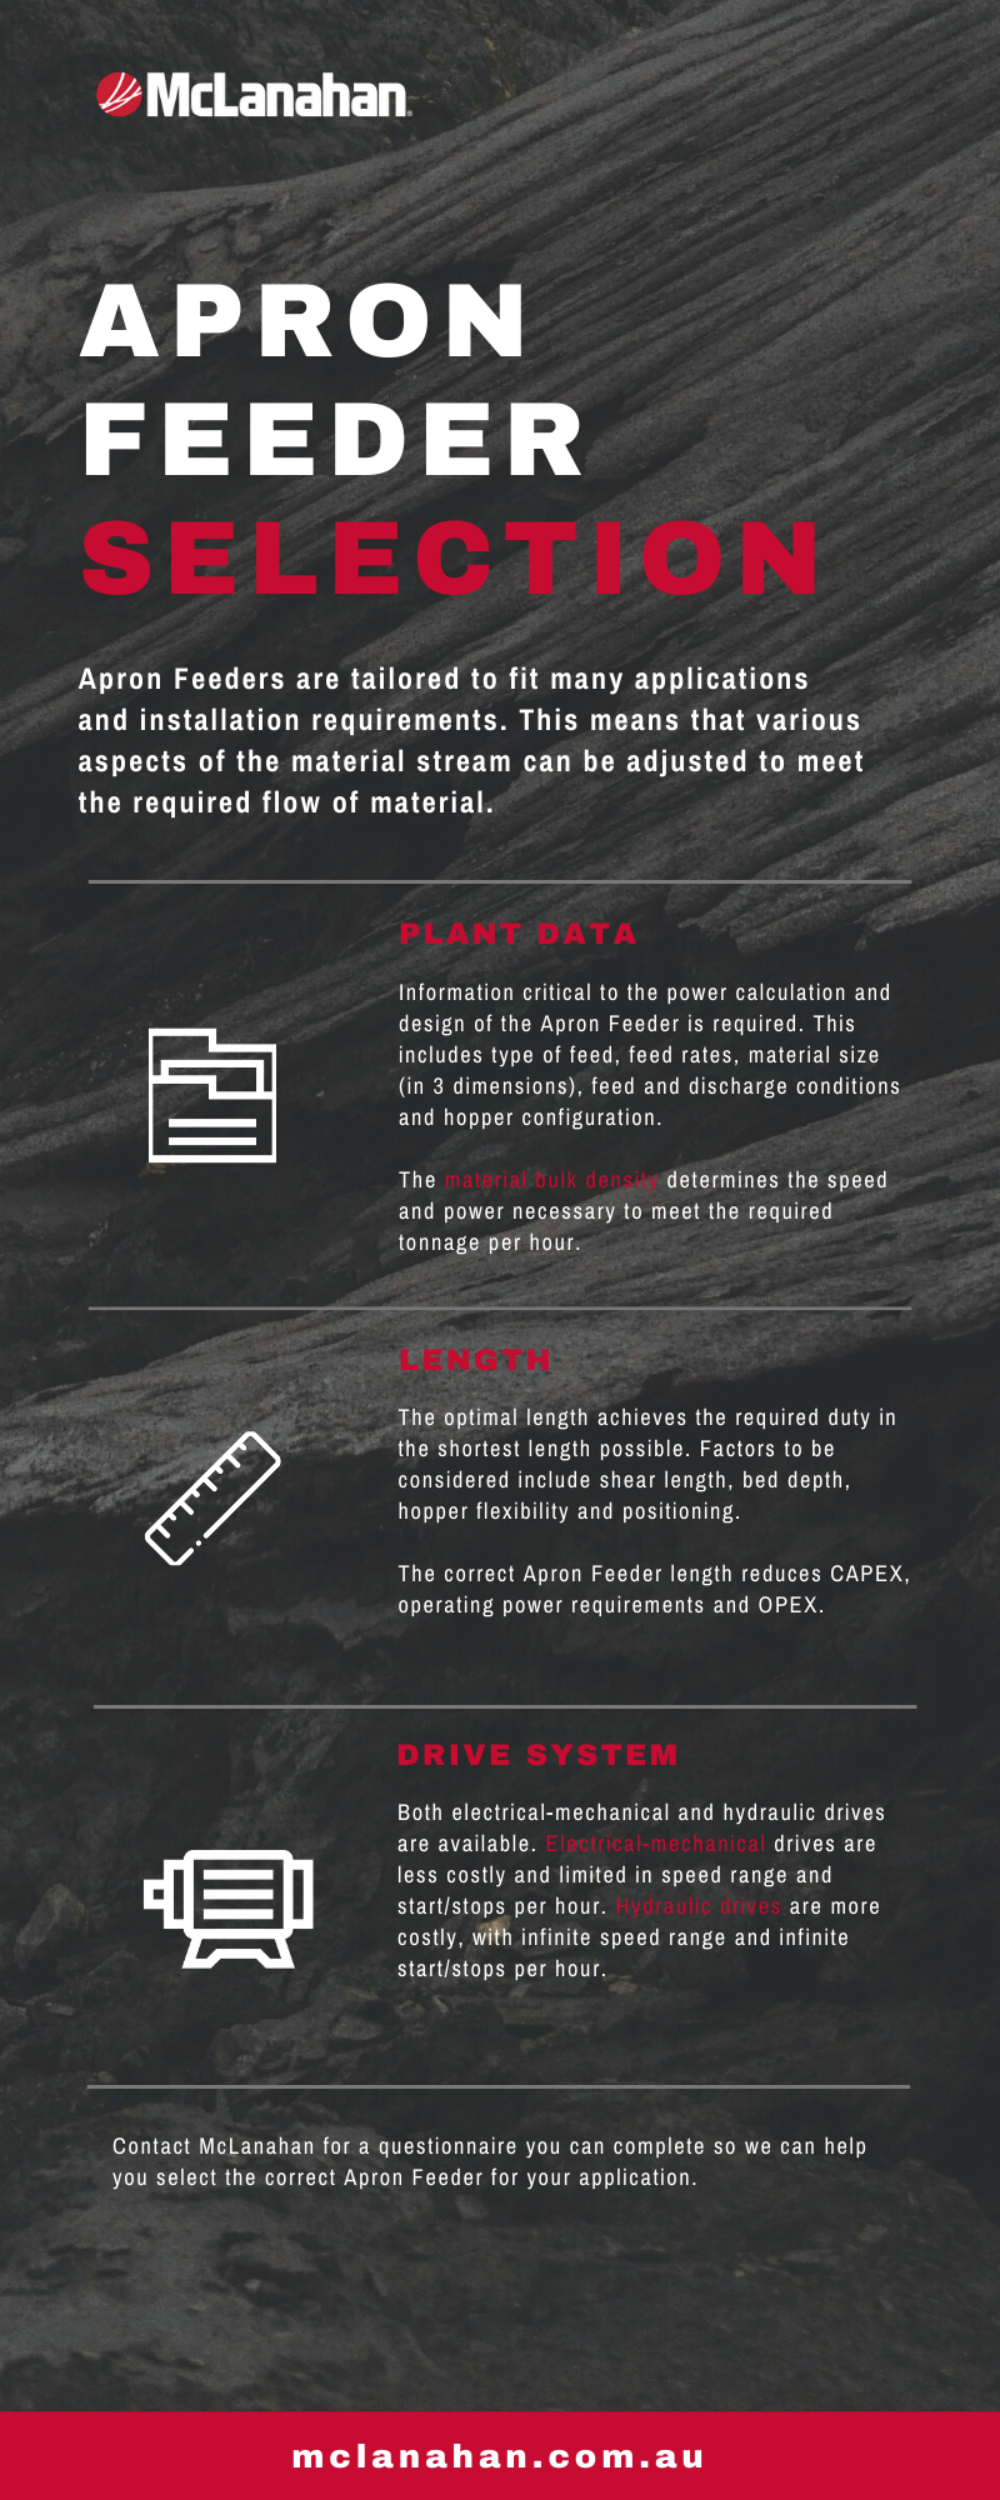 Apron Feeder Sizing And Selection